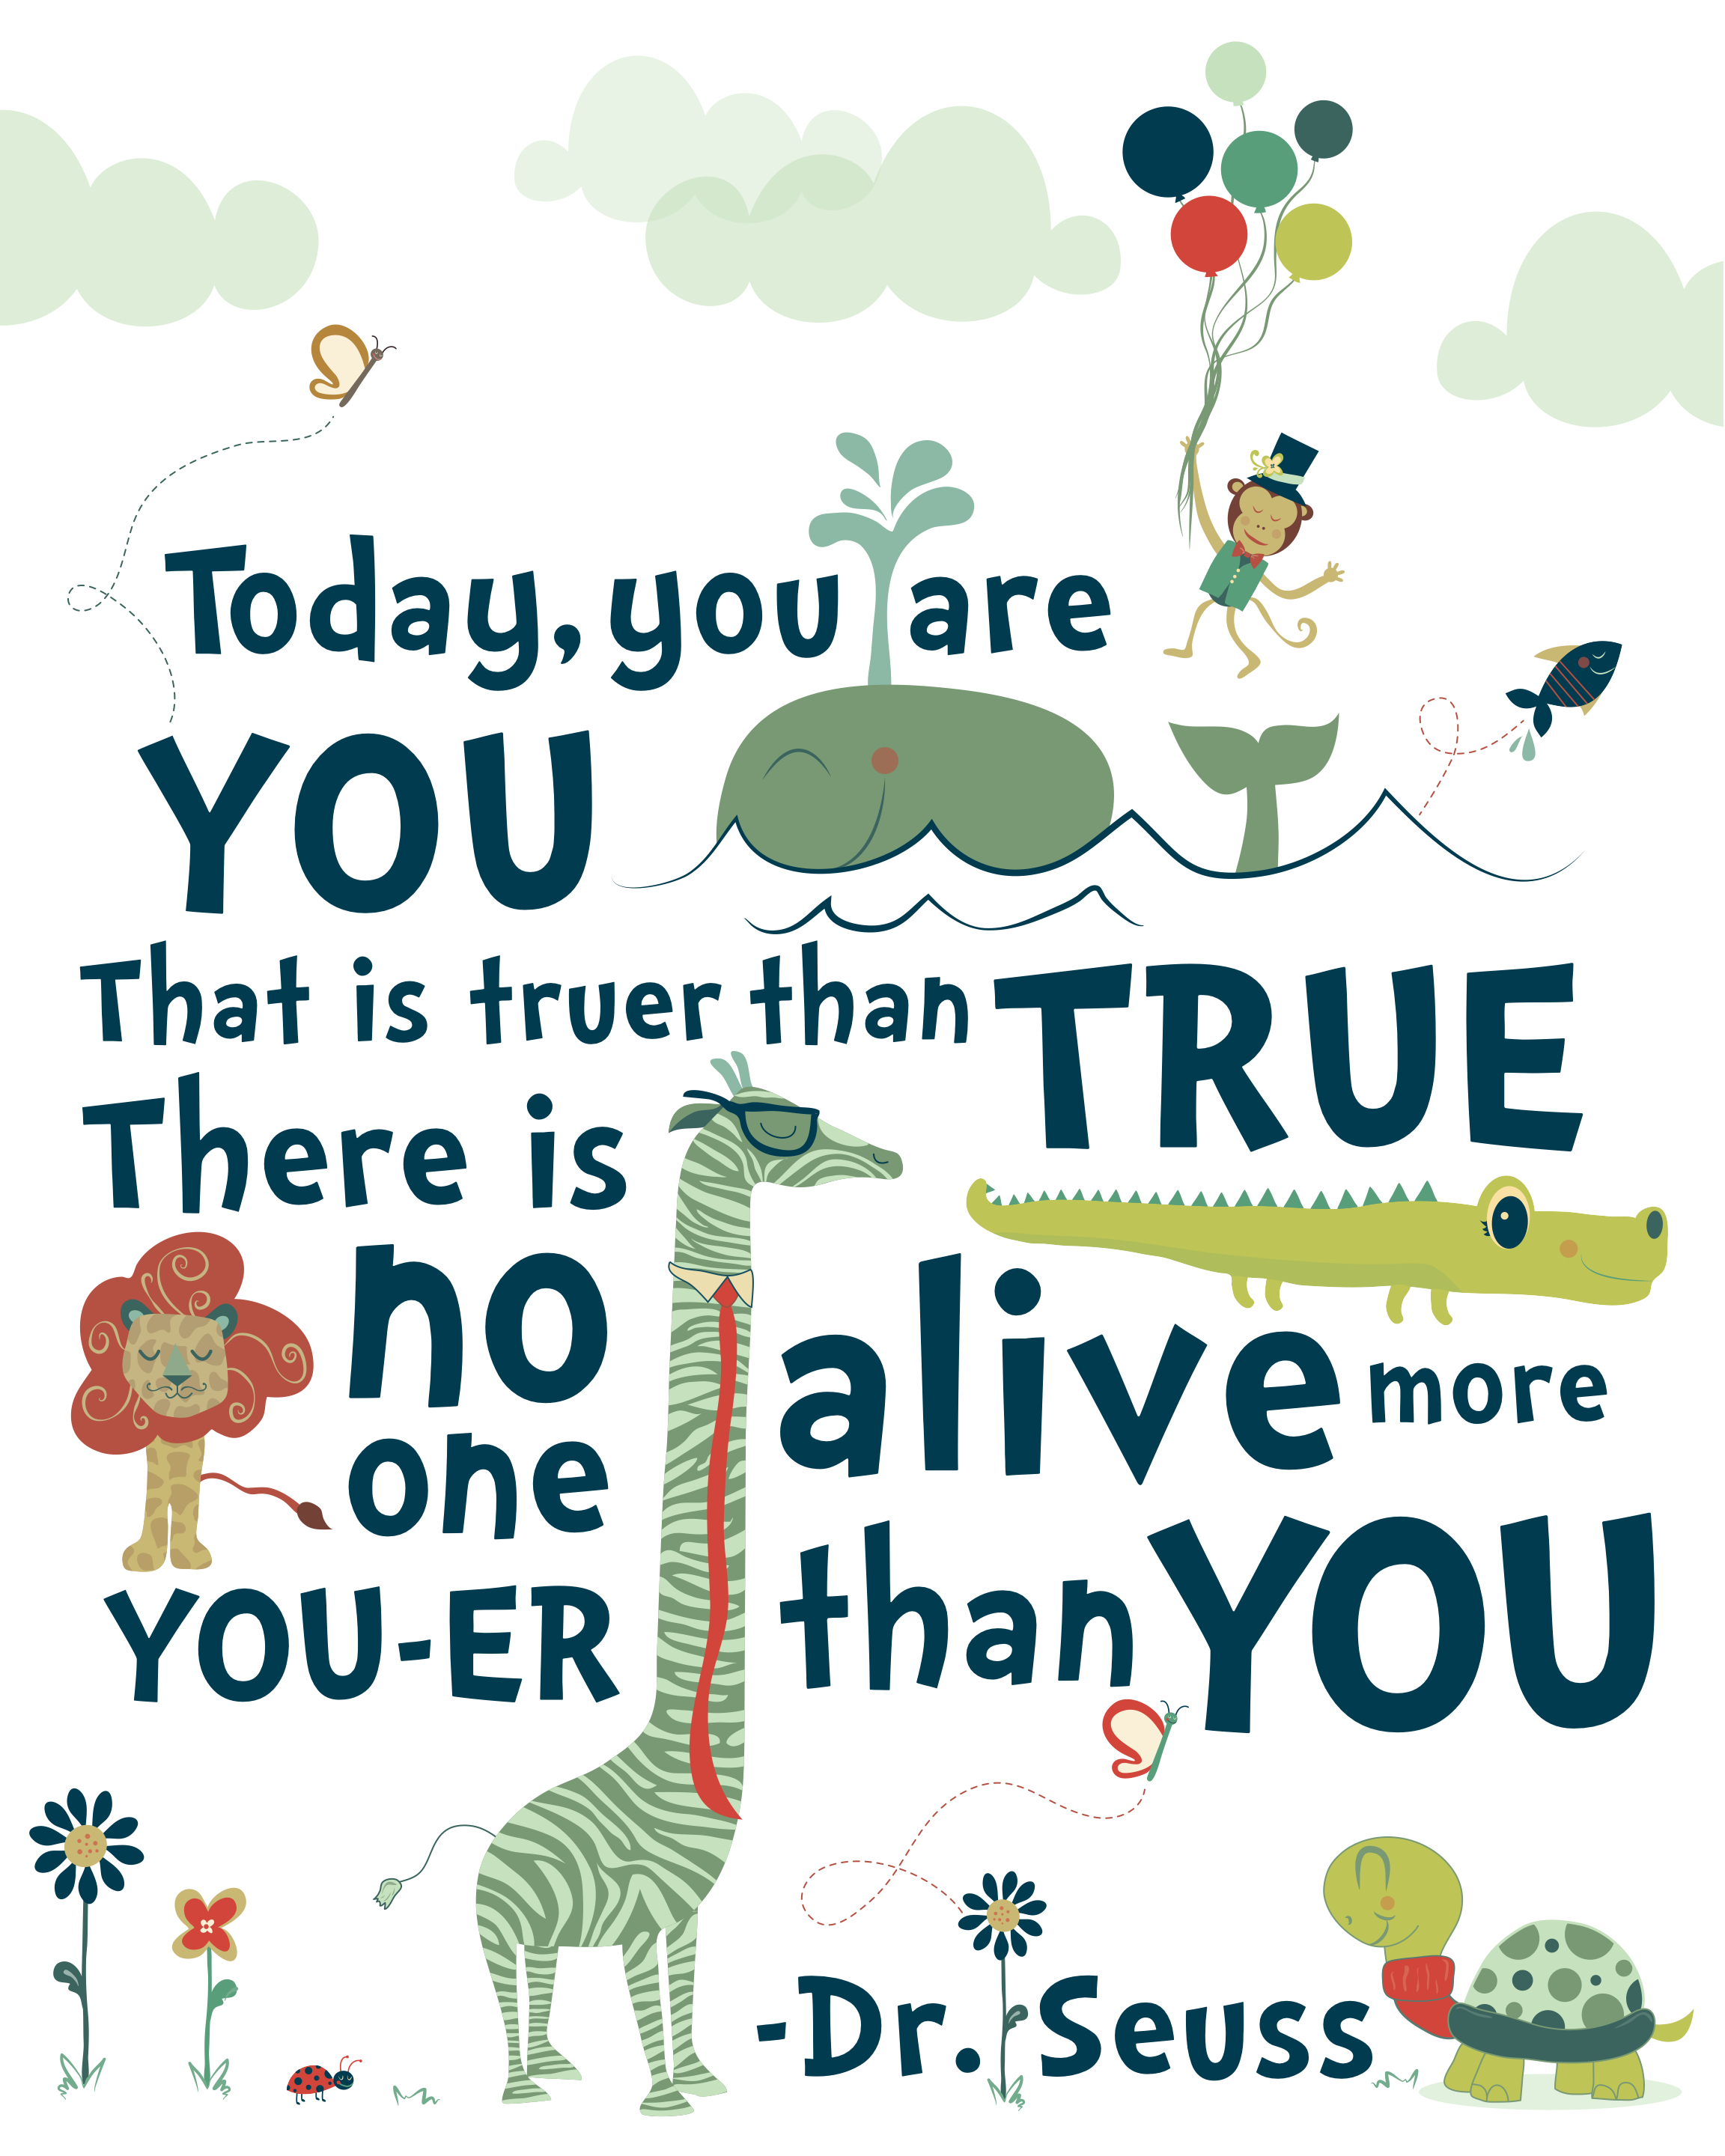 Dr Seuss Quotes About Love Today You Are You That Is Truer Than True… Dr Seuss  Gliza Design